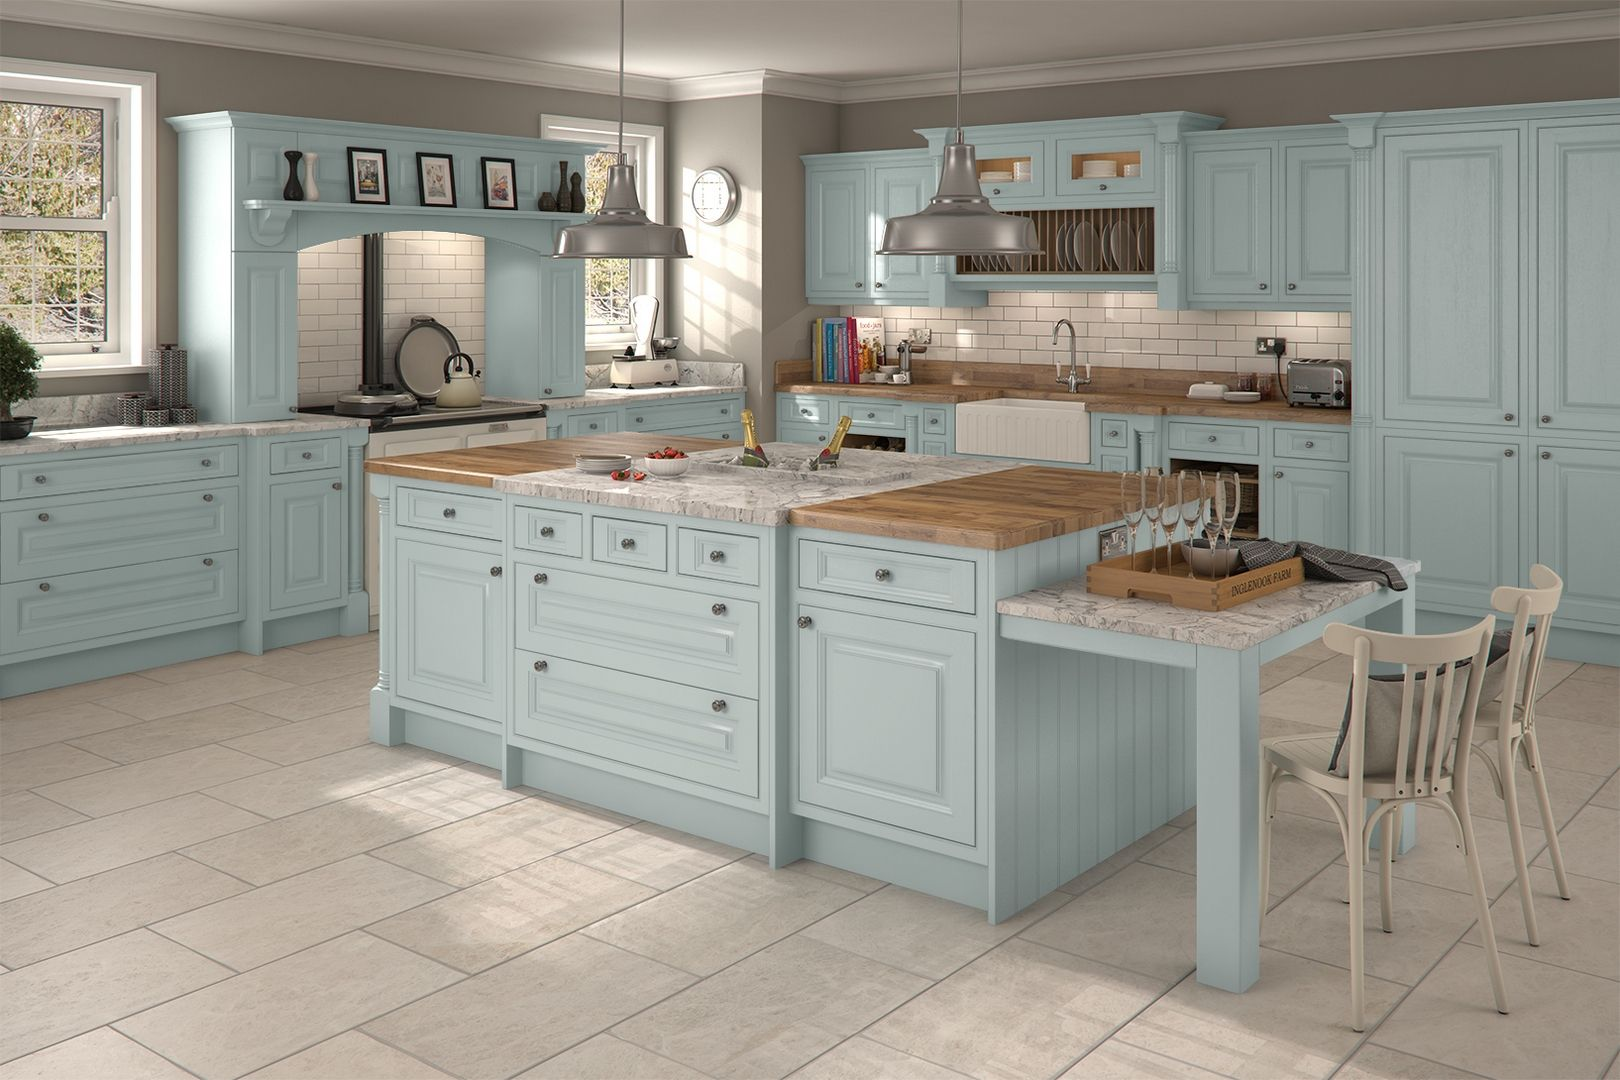 Pin By Carolyn Roy On Kitchen Duck Egg Blue Kitchen Cabinets Blue Kitchen Cabinets Duck Egg Blue Kitchen